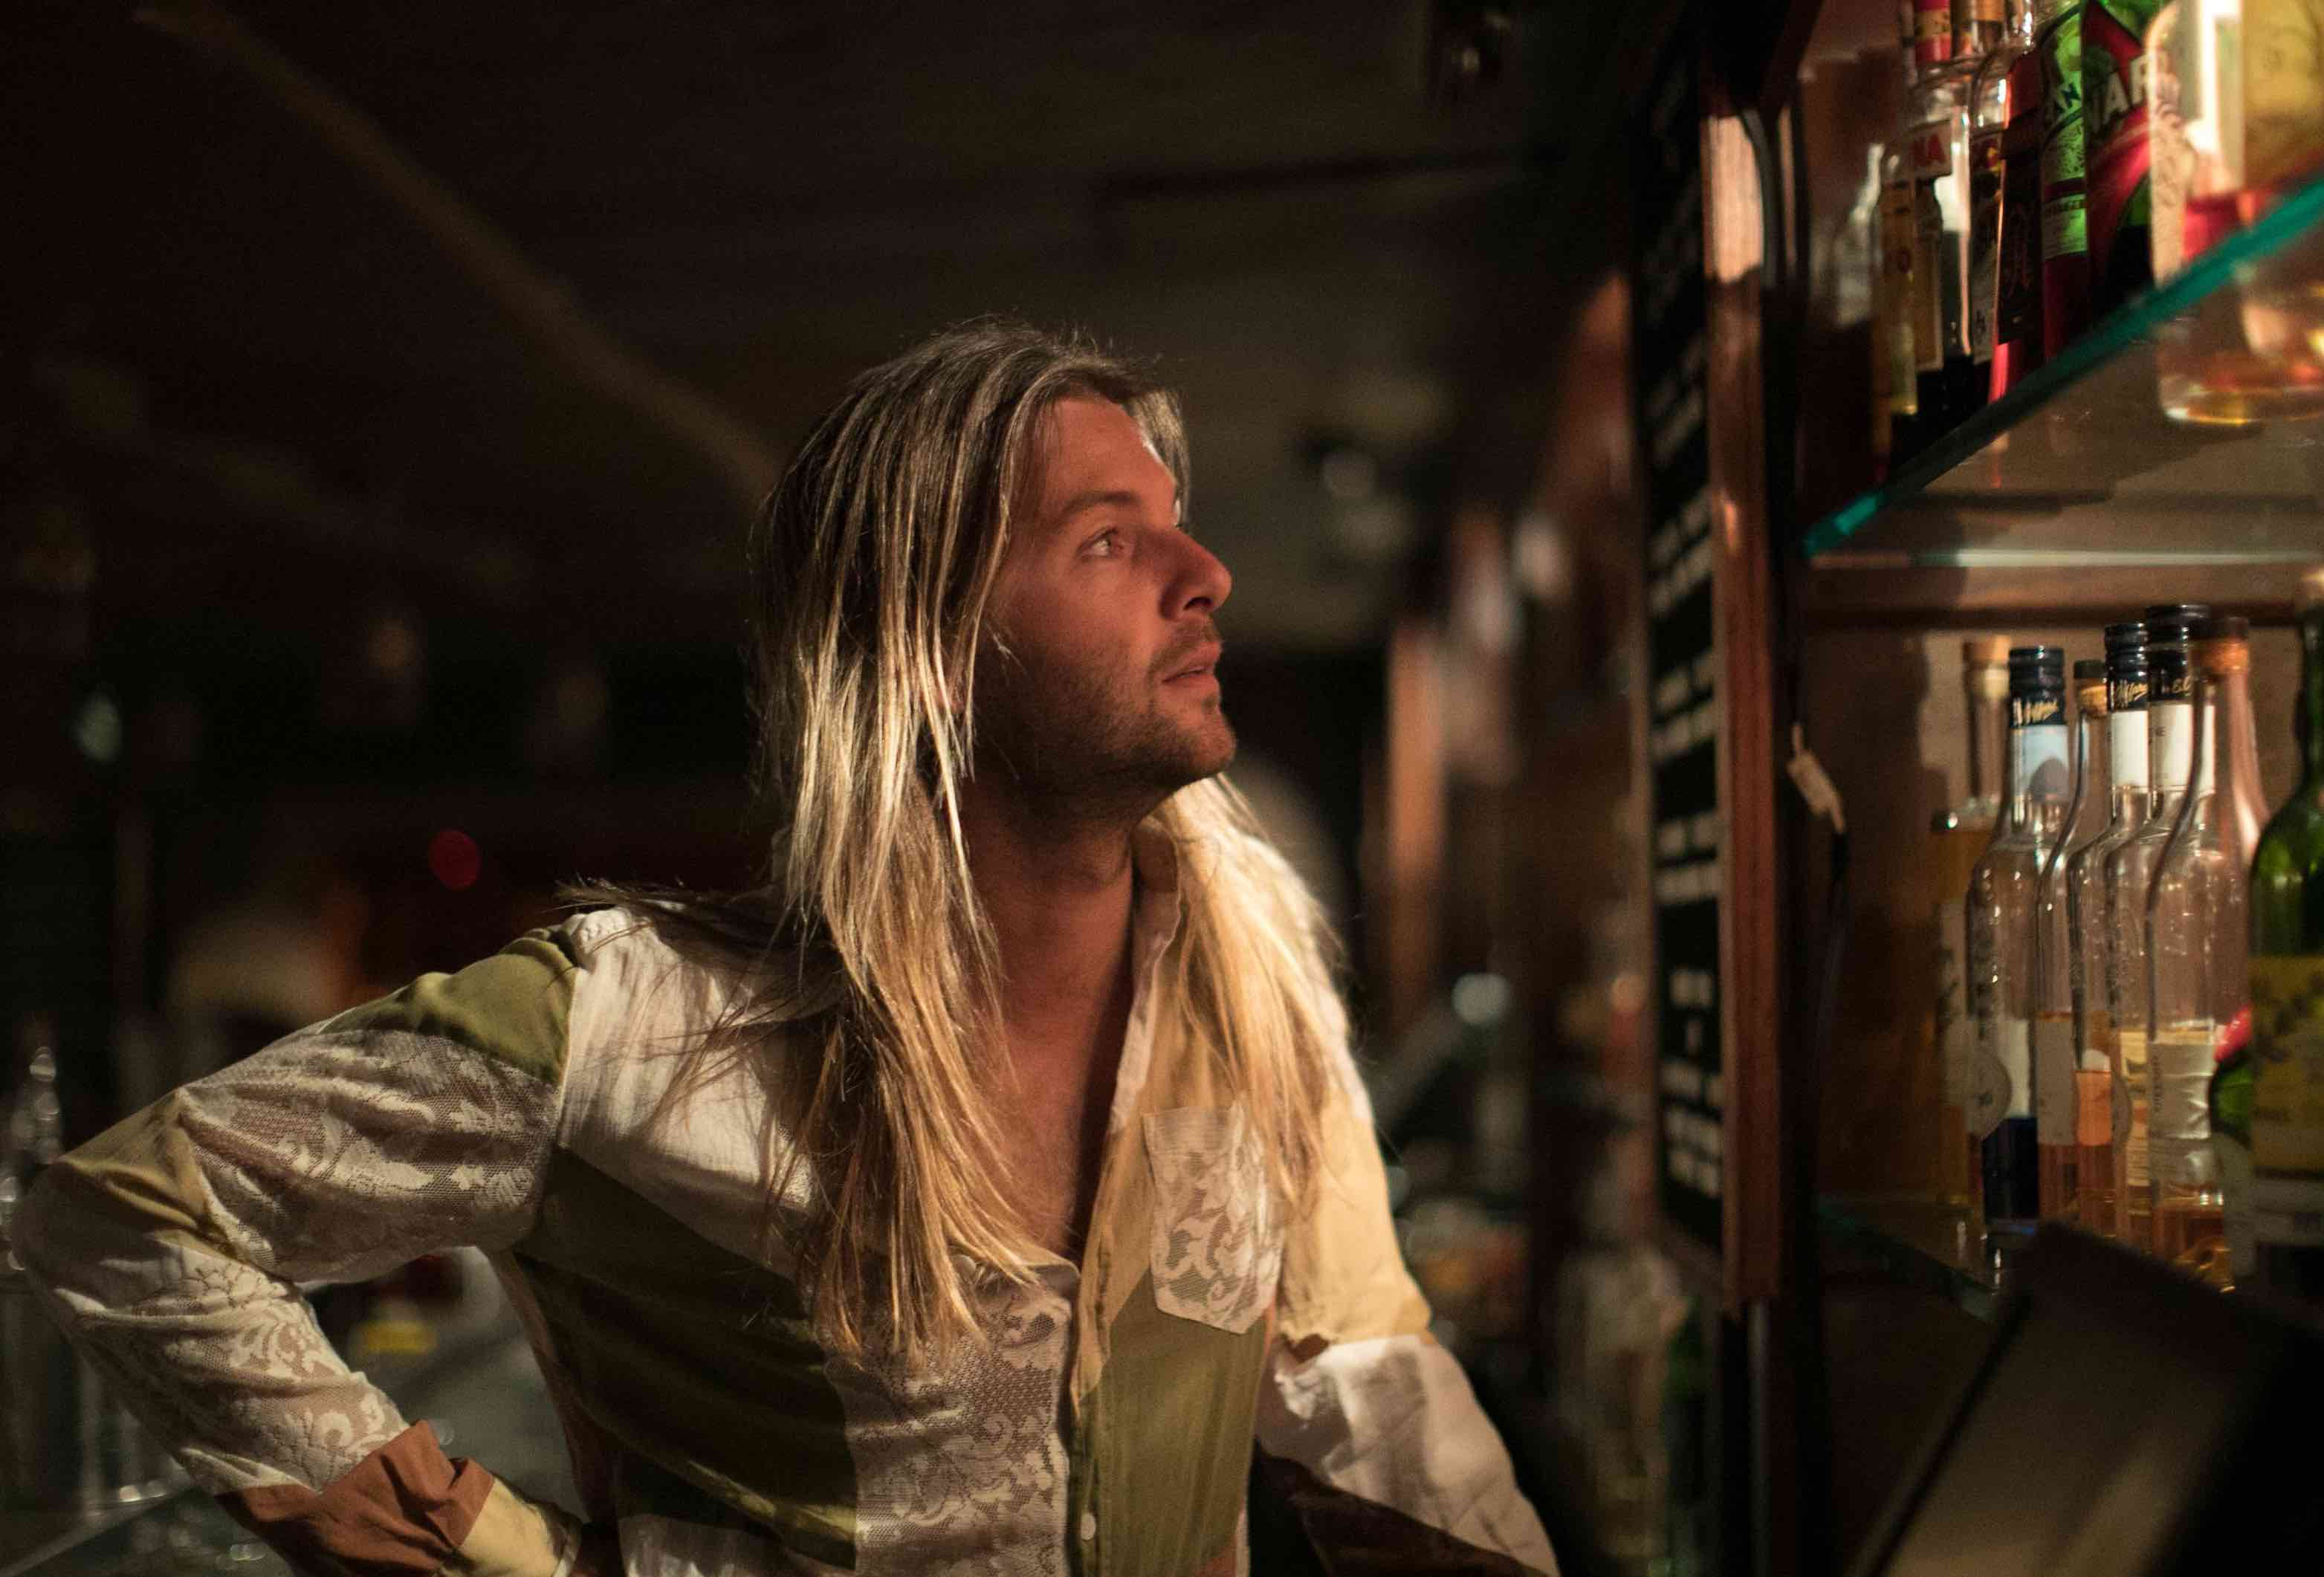 Cancelled! - Keith Harkin with guest at the Artesian